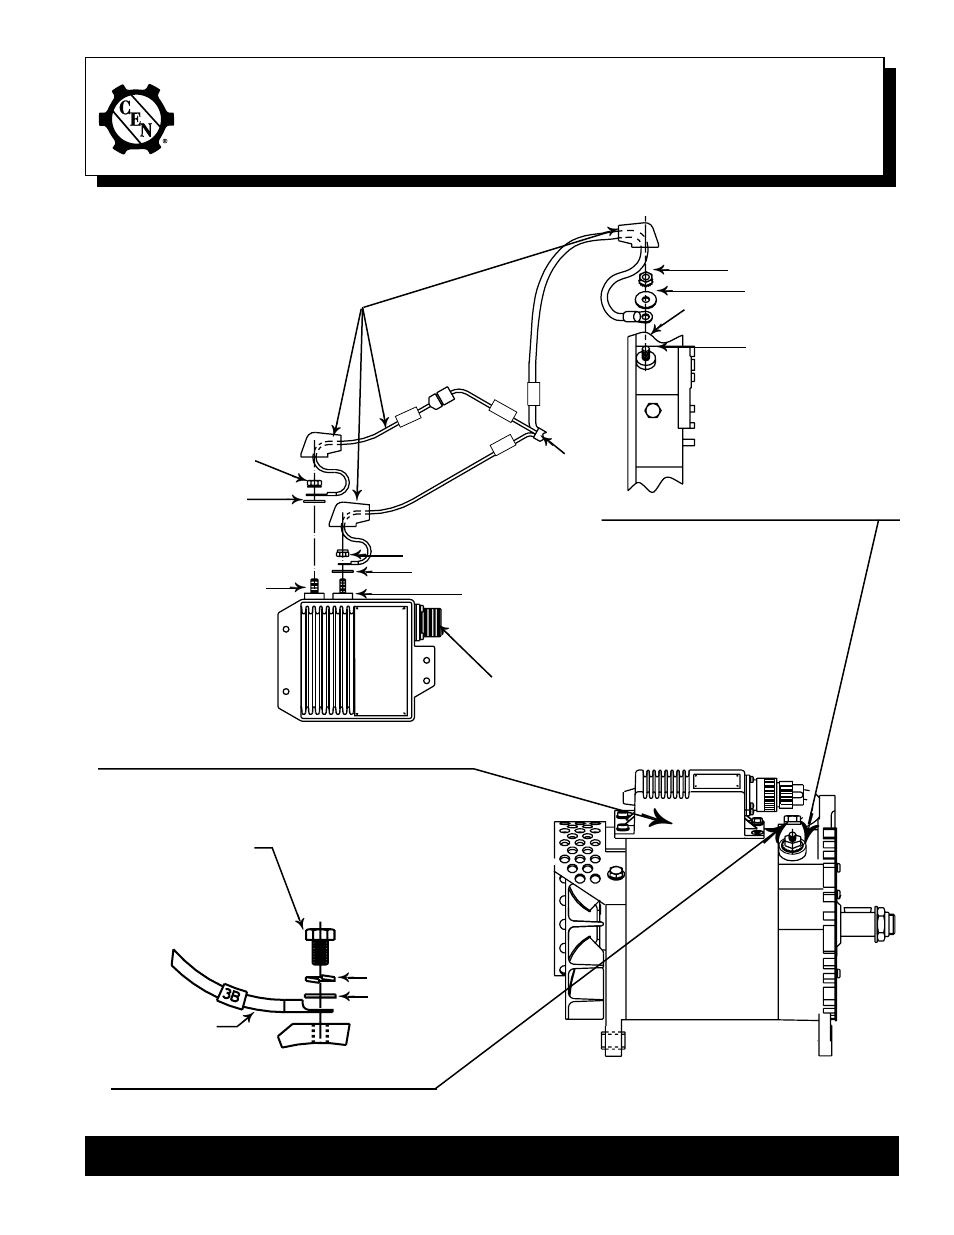 C E  Niehoff & Co  N1501 Alternator Installation User Manual | 1 page